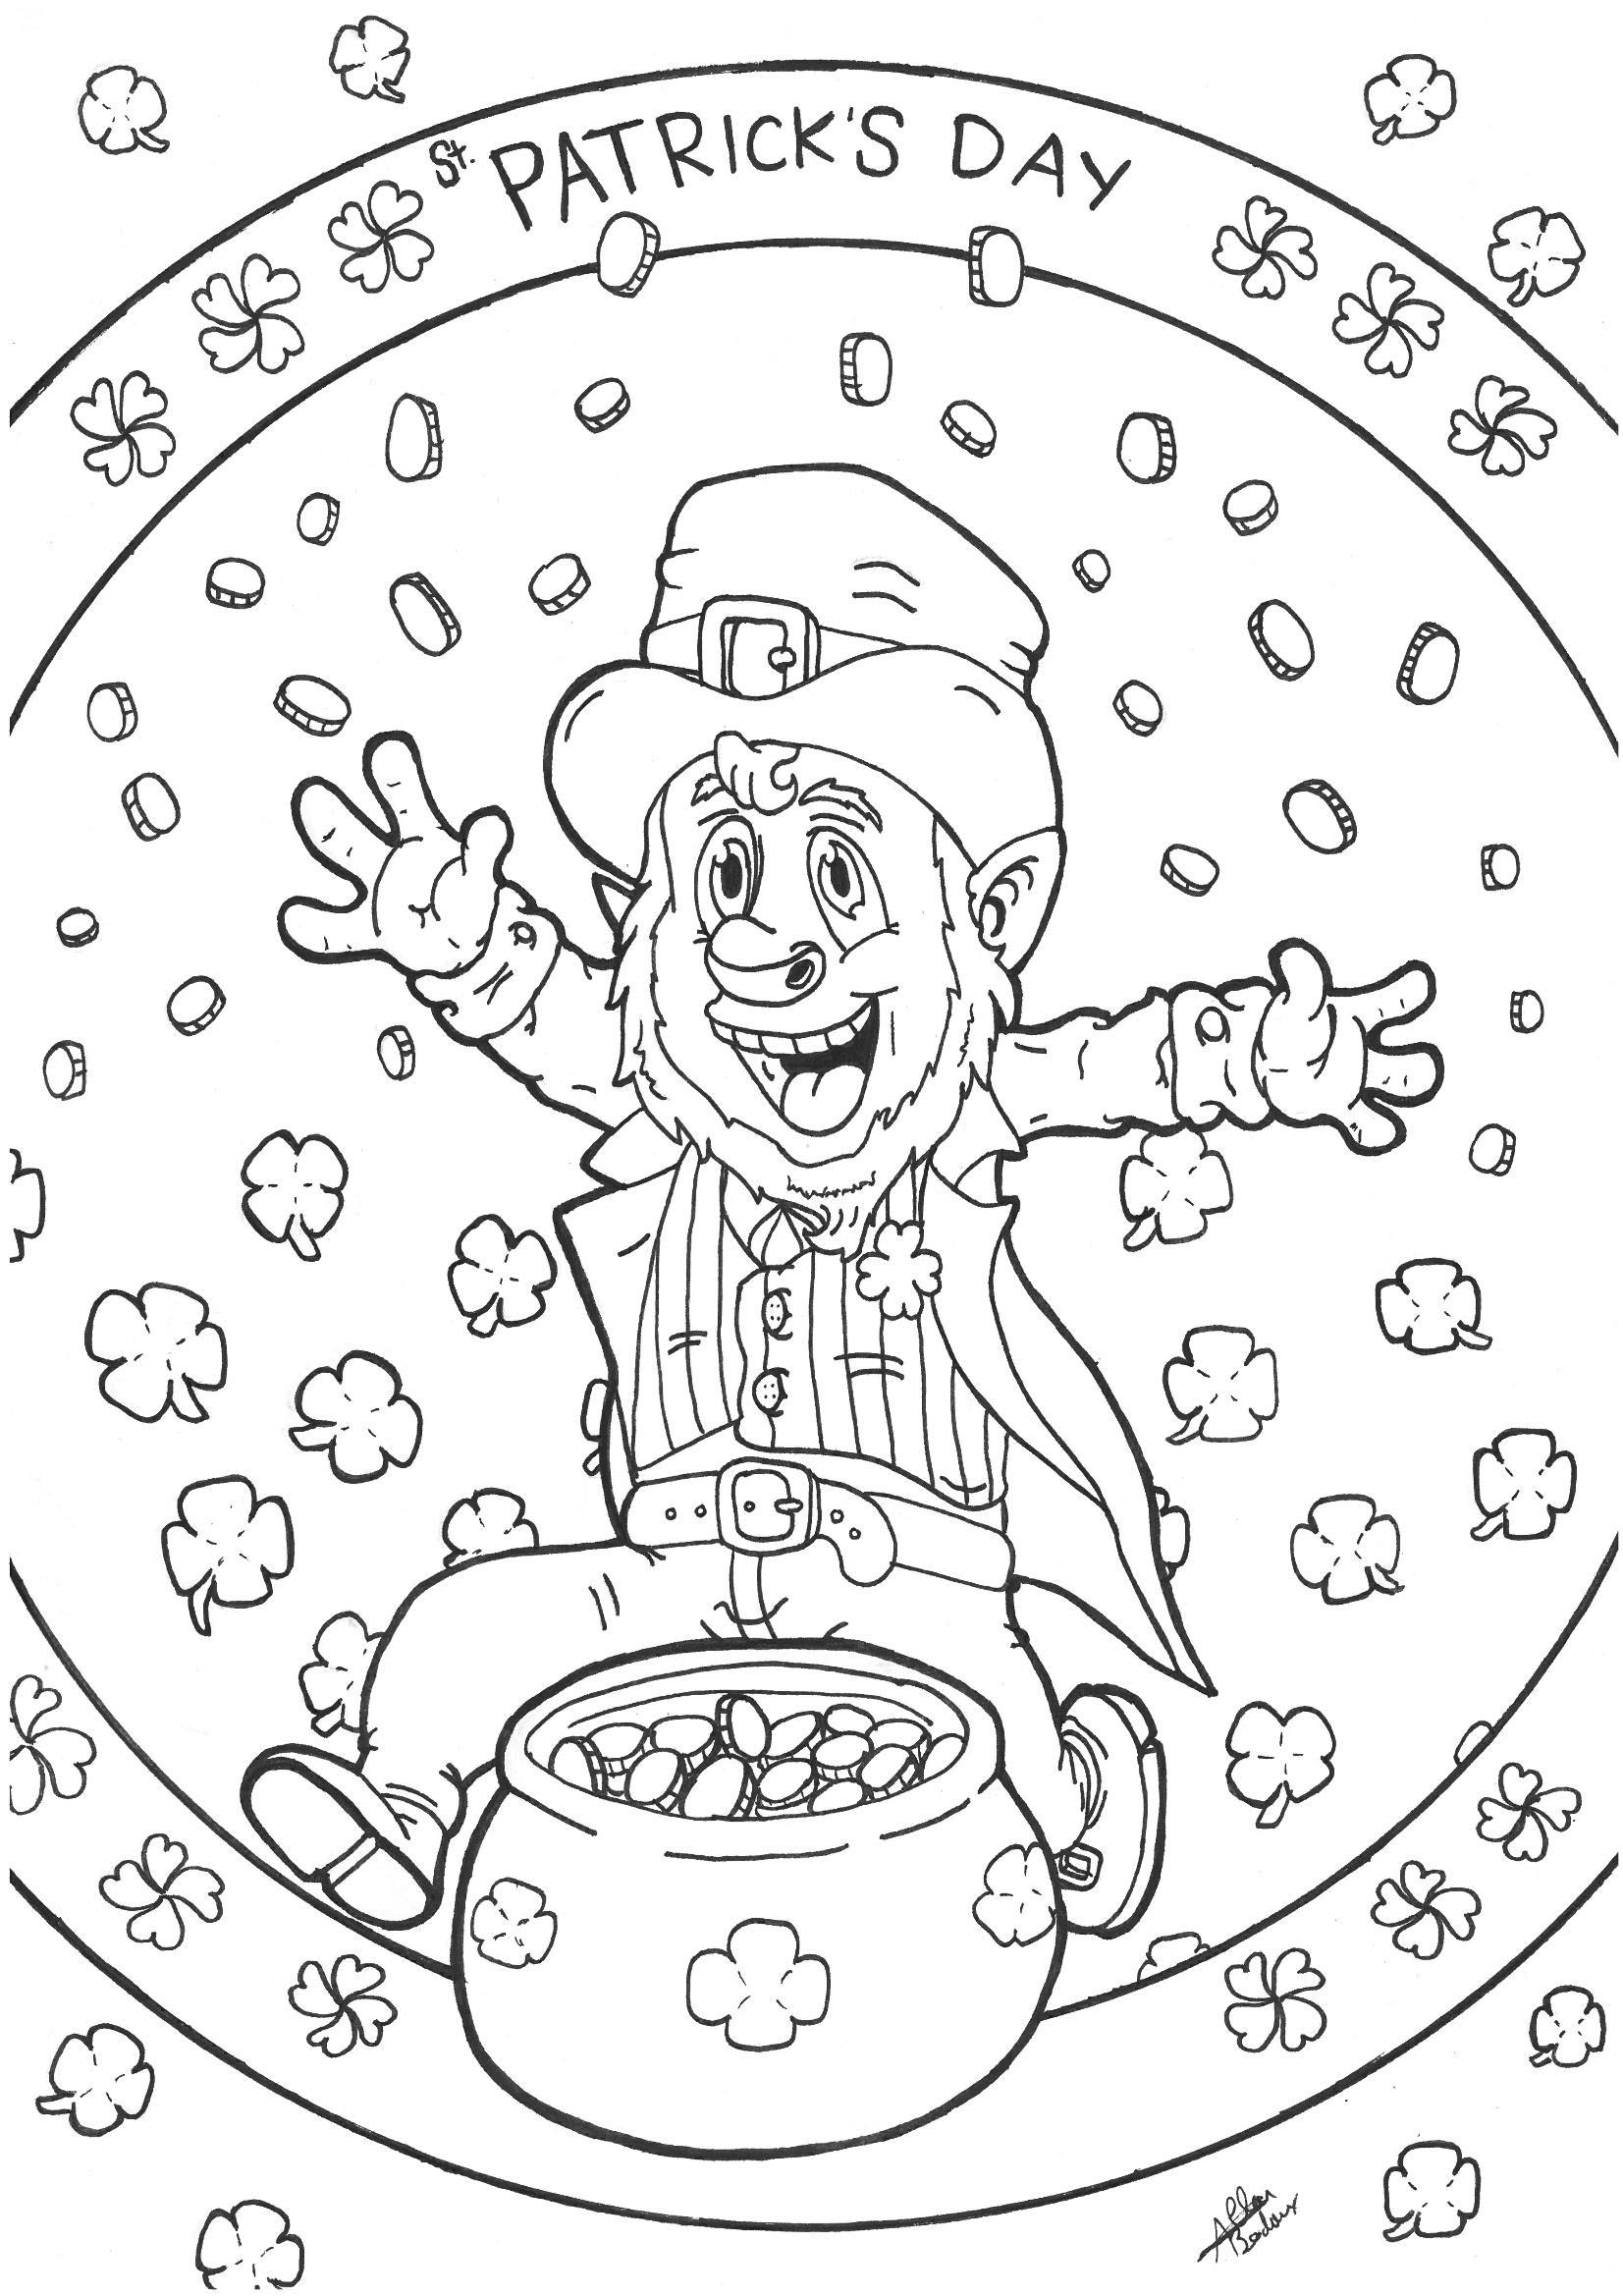 Coloring sheet leprechaun - Leprechaun Celebrating Saint Patrick S Day With His Pot Of Pieces Of Gold From The Gallery